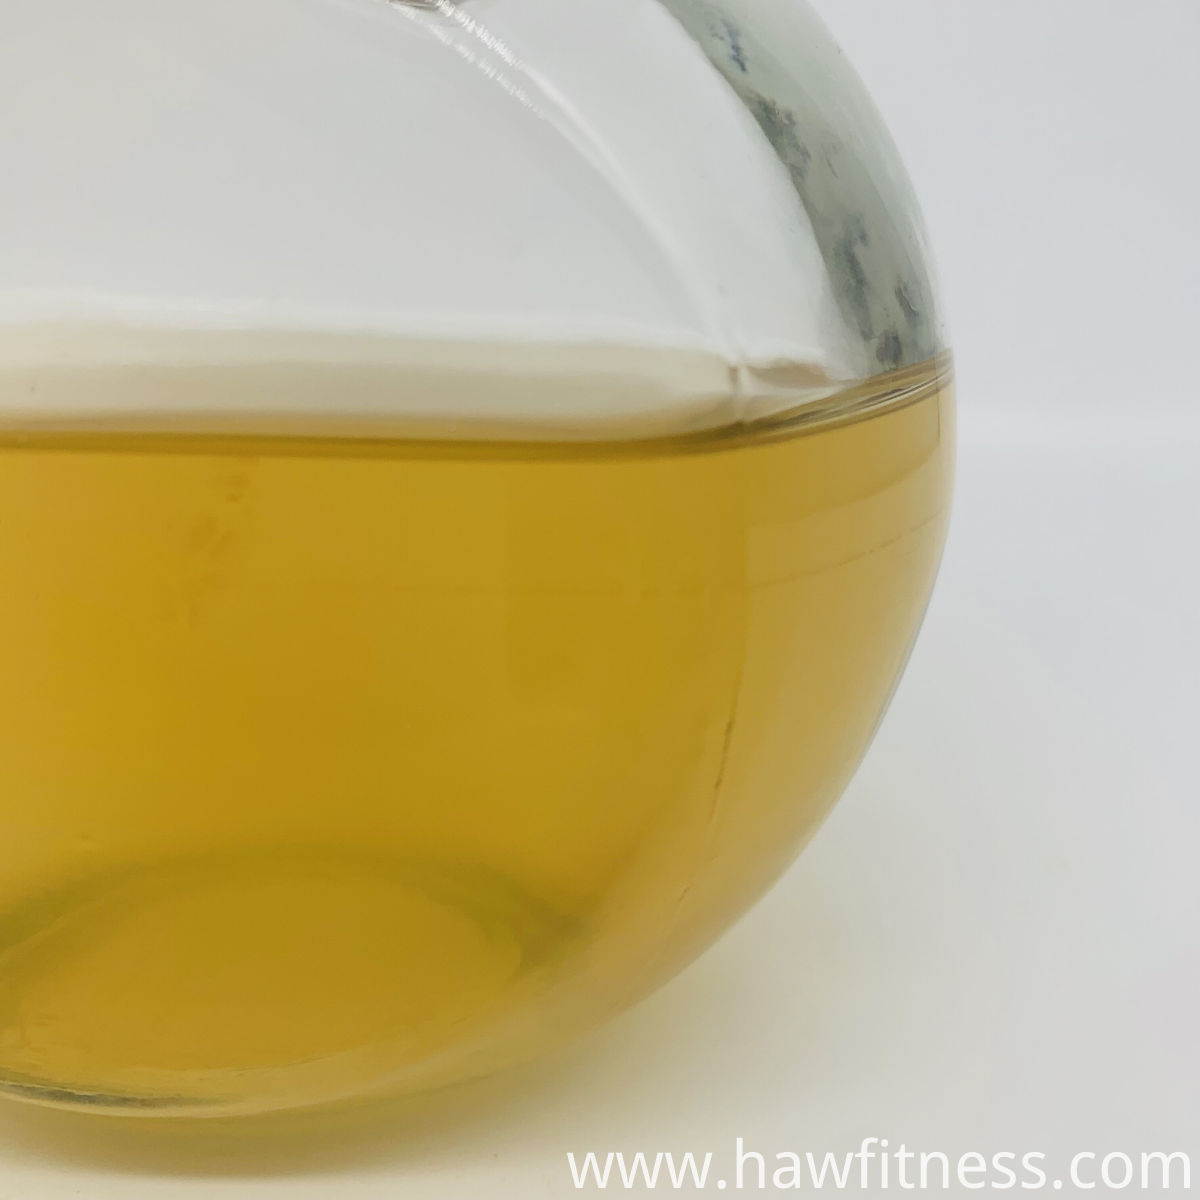 Malt extract 100% water-soluble